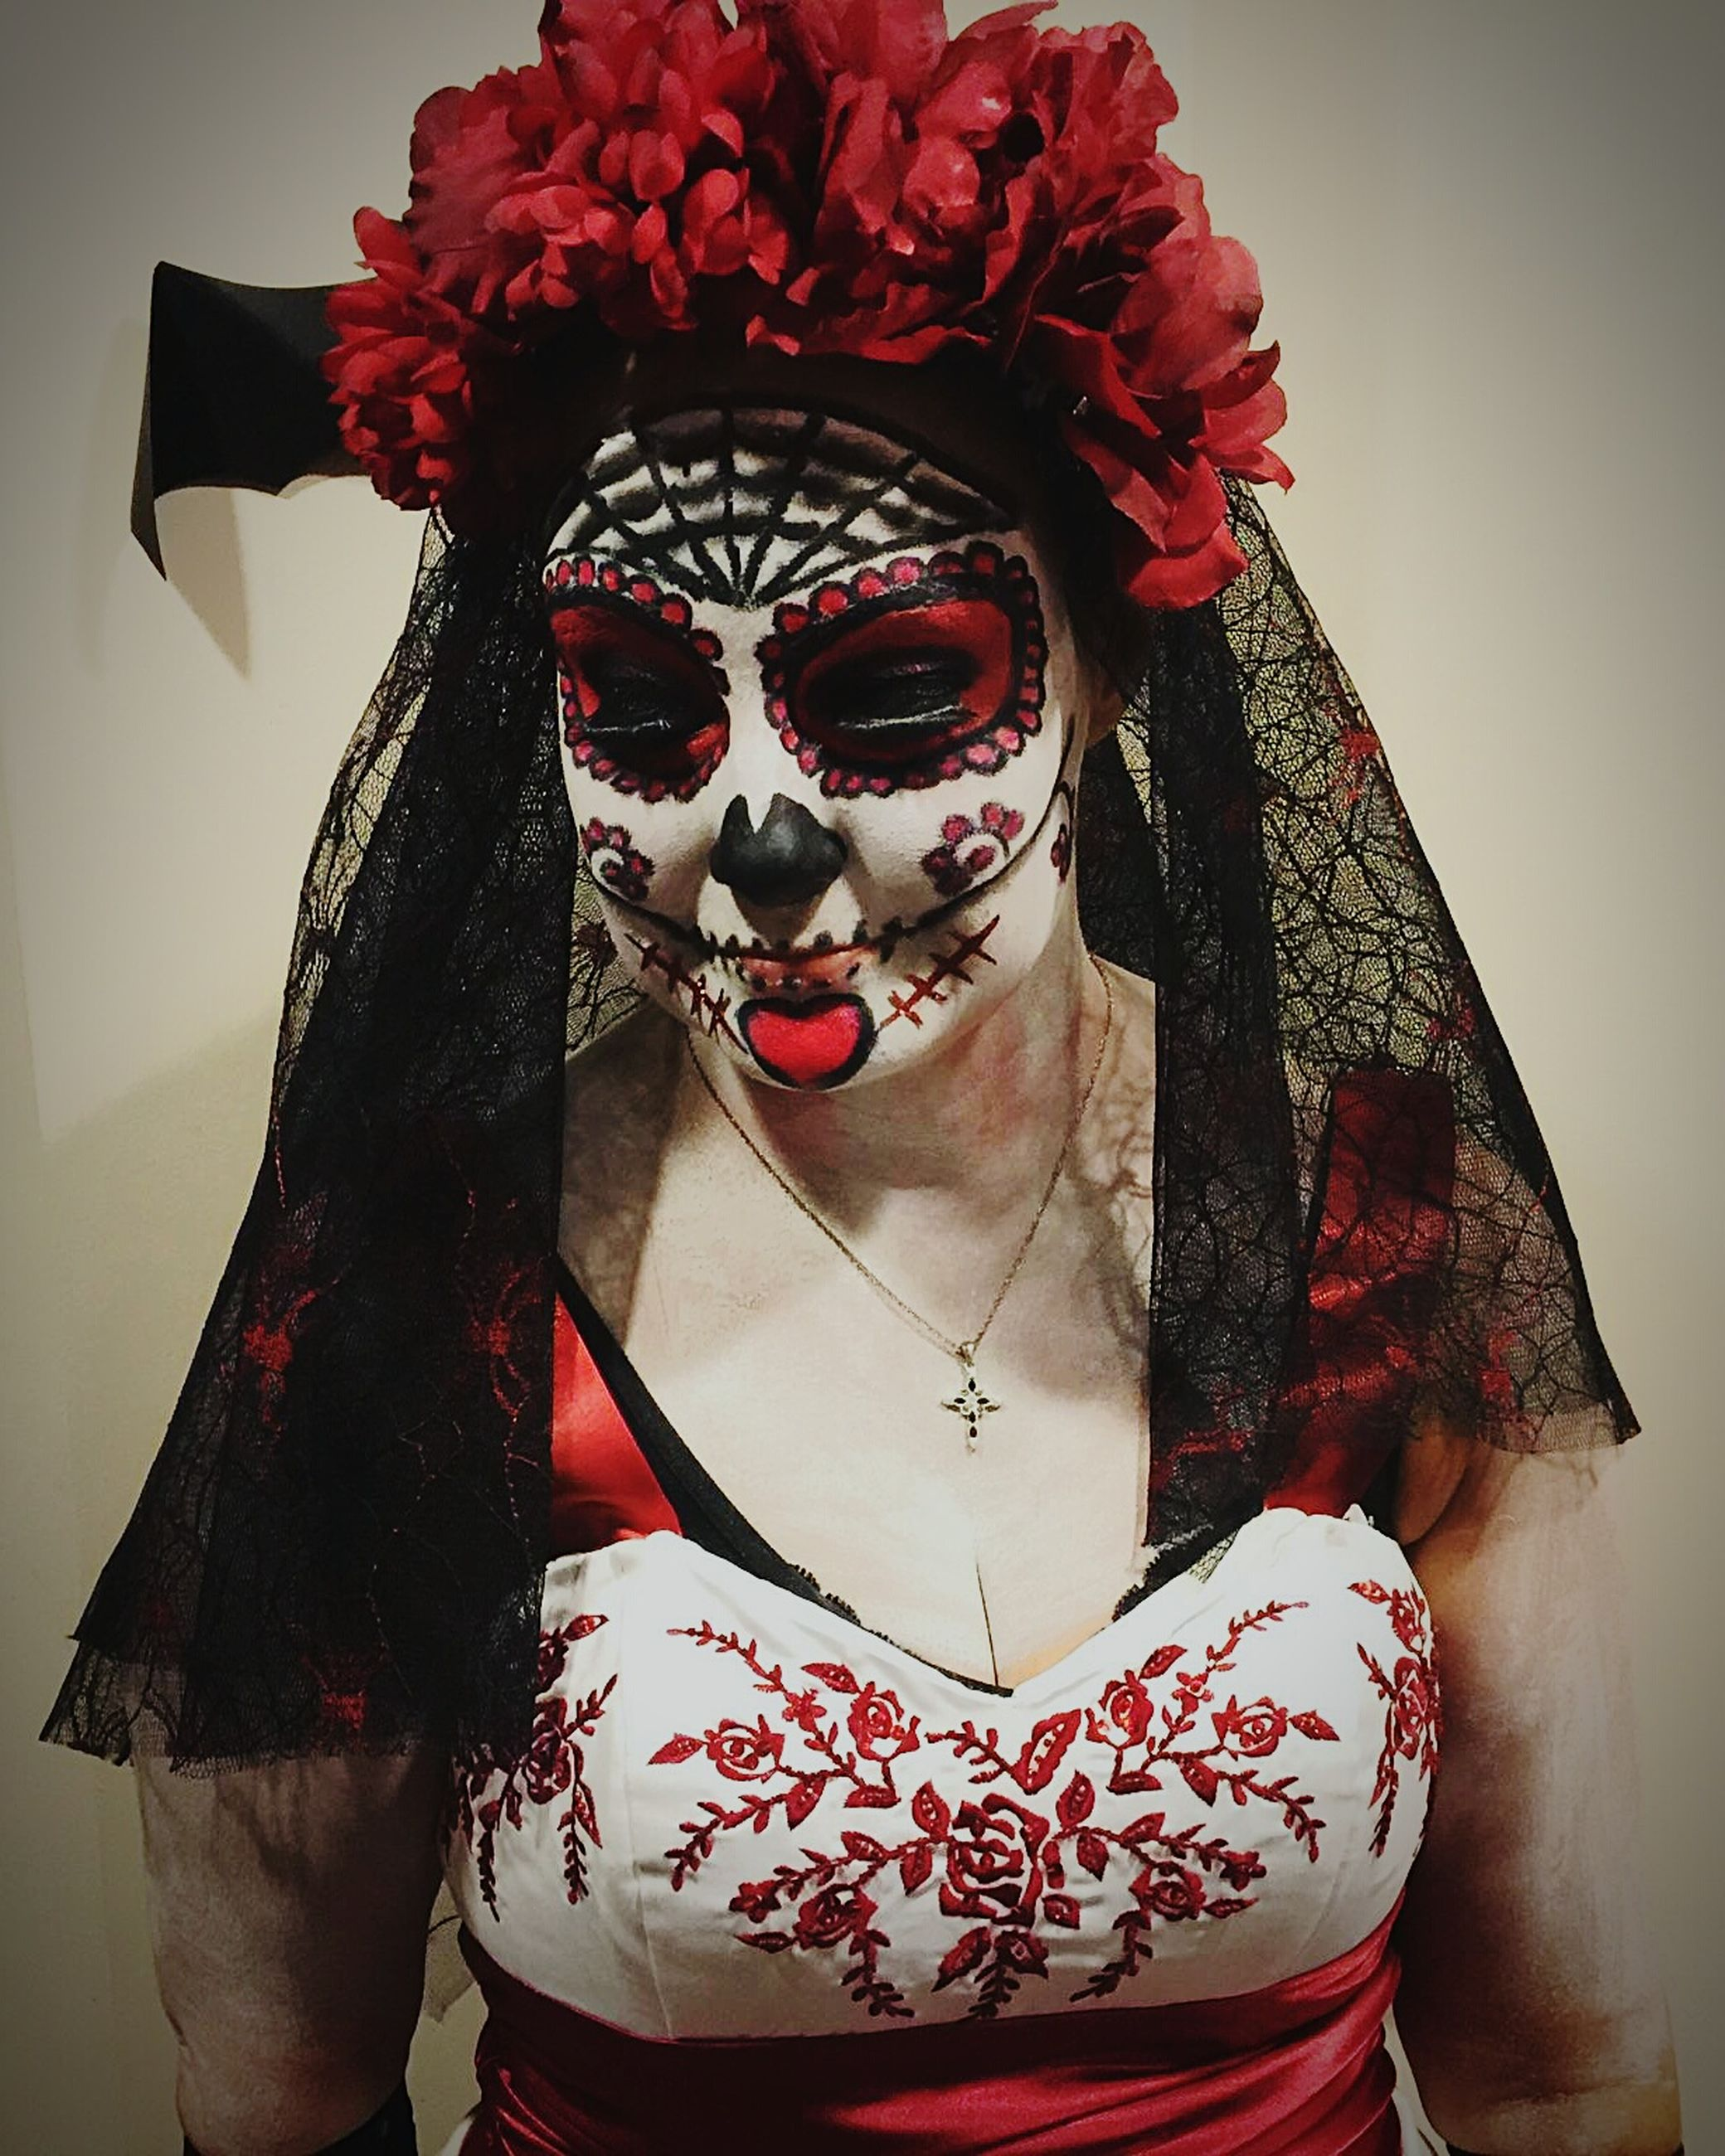 portrait, looking at camera, human representation, art, art and craft, creativity, front view, red, mask - disguise, indoors, tradition, close-up, sculpture, cultures, young adult, celebration, costume, statue